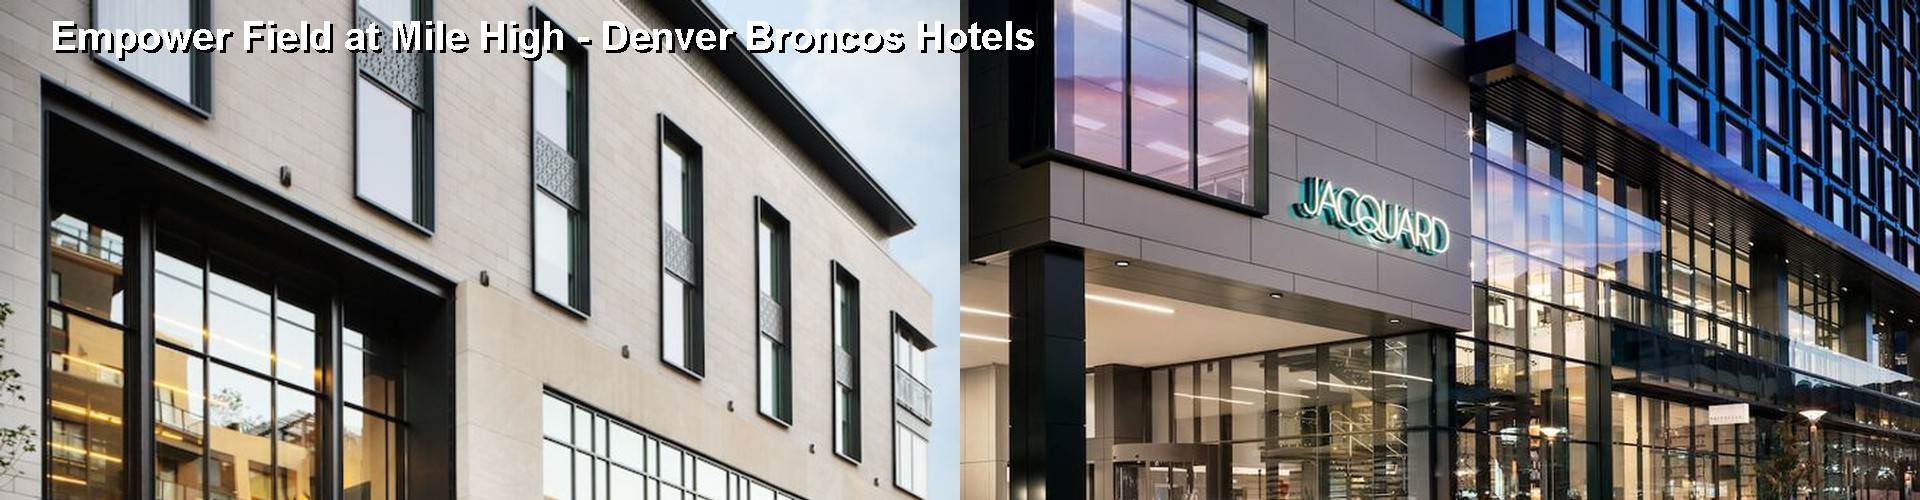 5 Best Hotels near Sport Authority at Mile High Denver Broncos